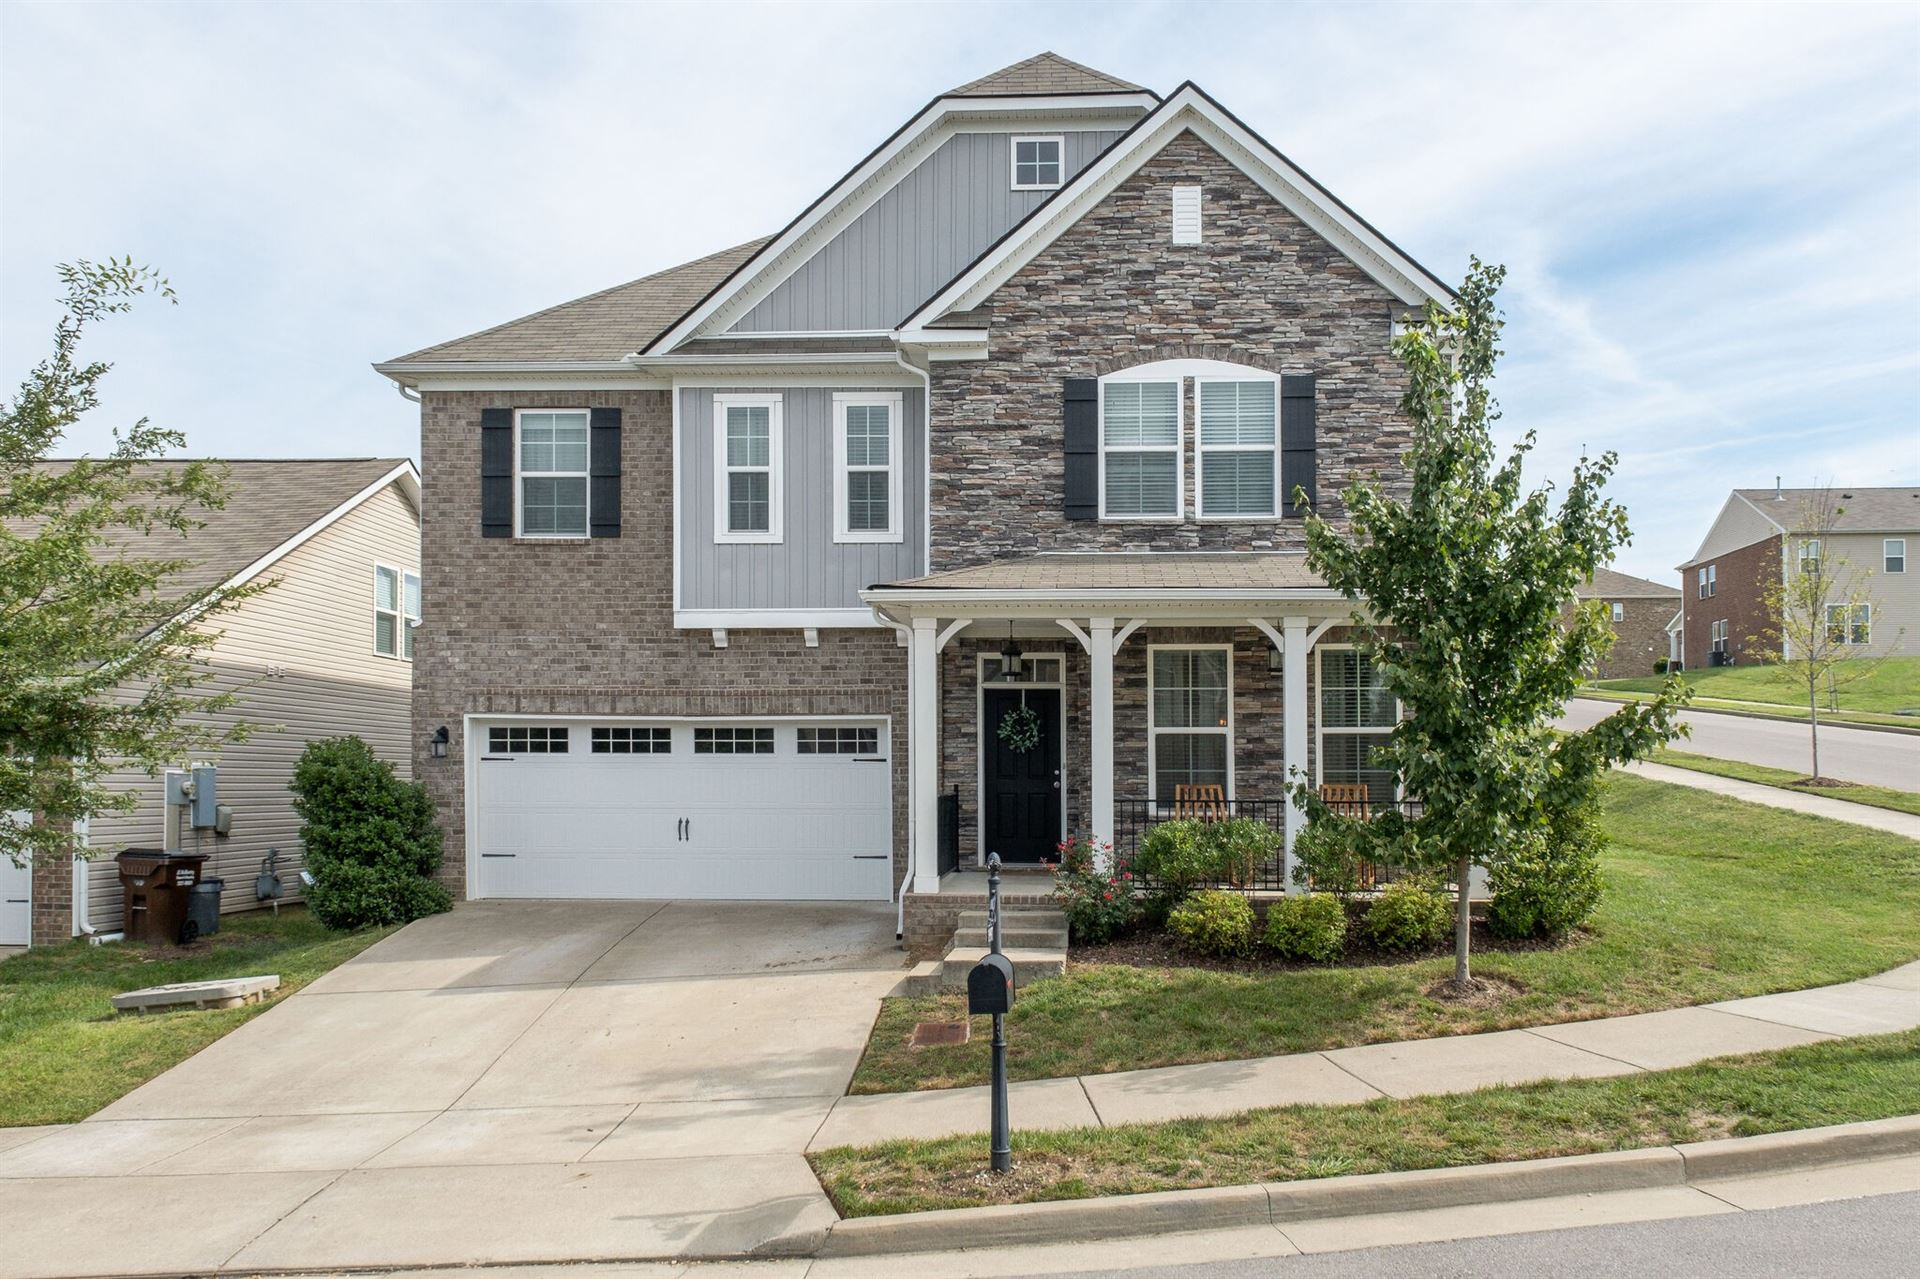 Photo of 1997 Stonewater Dr, Hermitage, TN 37076 (MLS # 2289551)